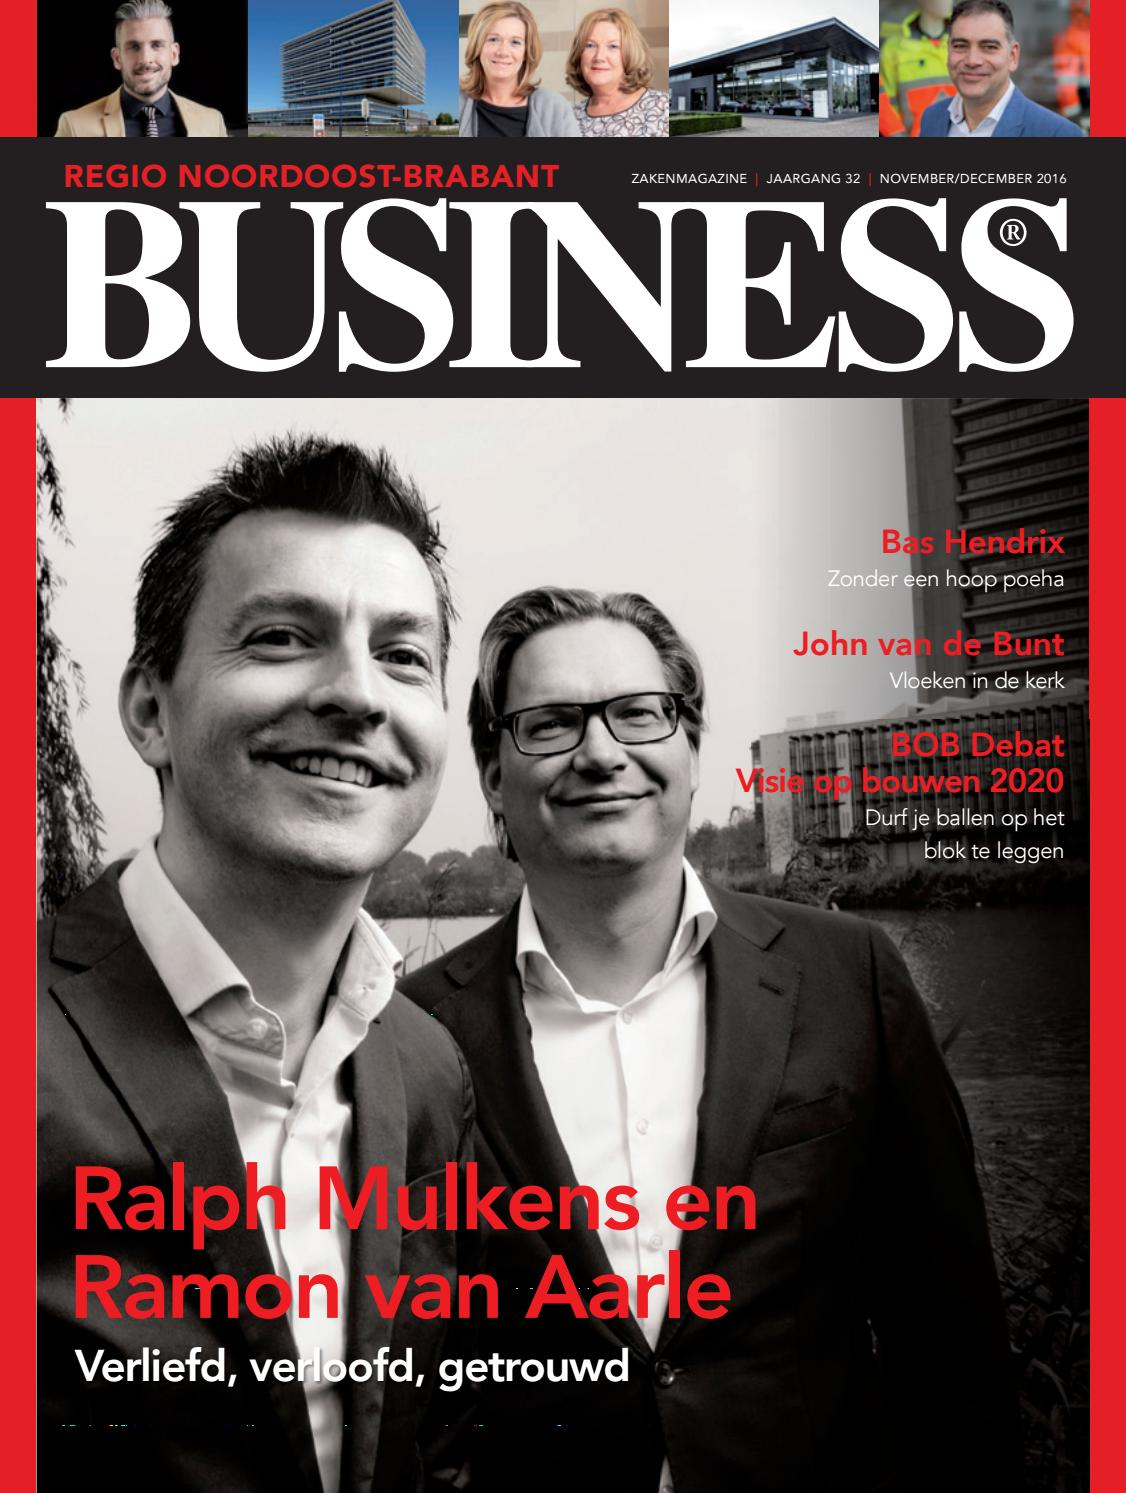 Regio business noordoost brabant nov/dec 2016 by regio business ...